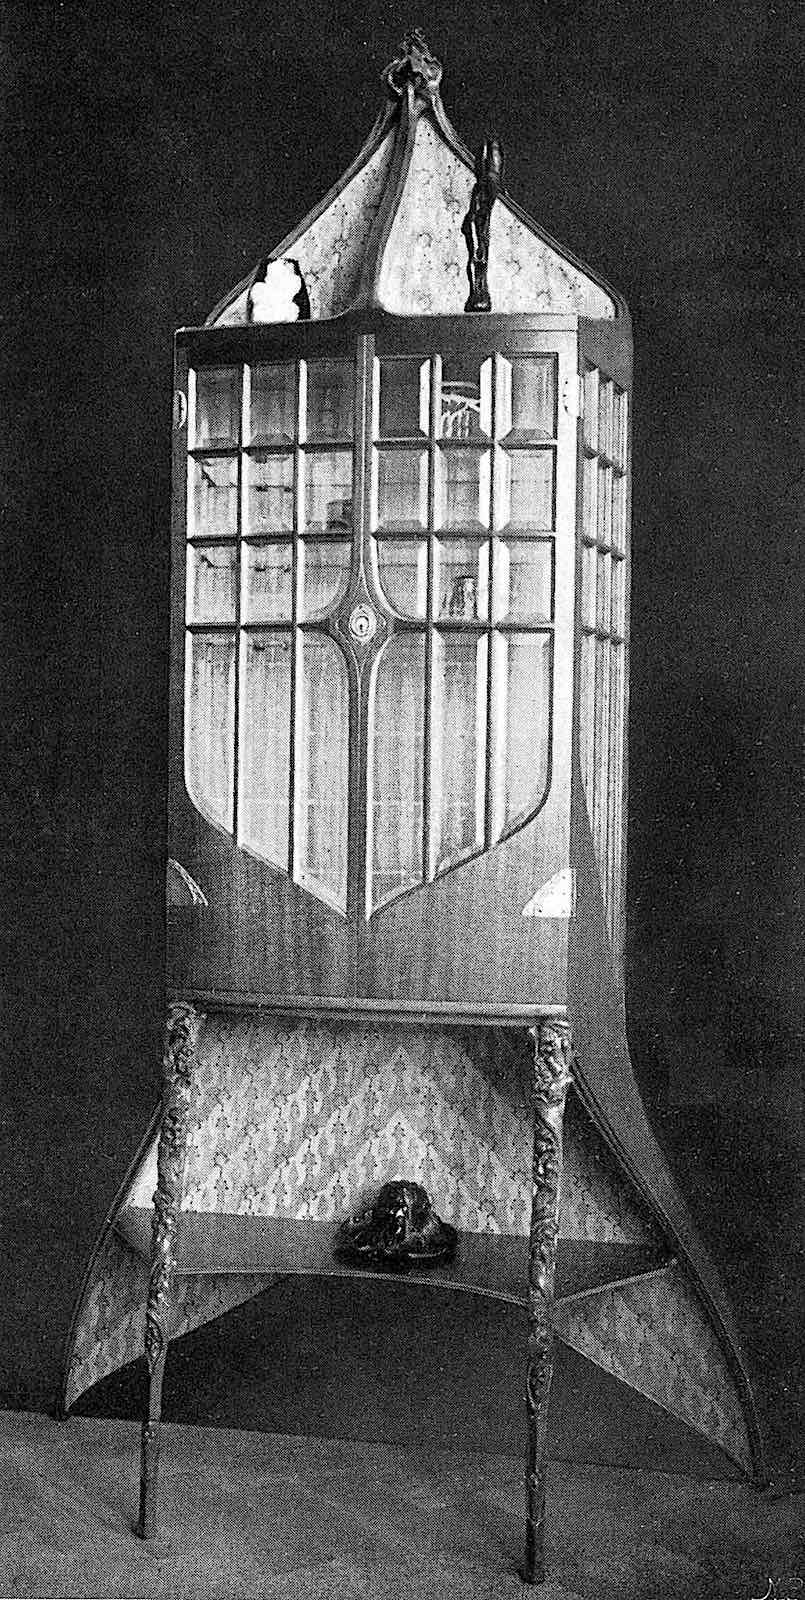 a Bernhard Pankok cabinet at the 1902 Turin Exposition